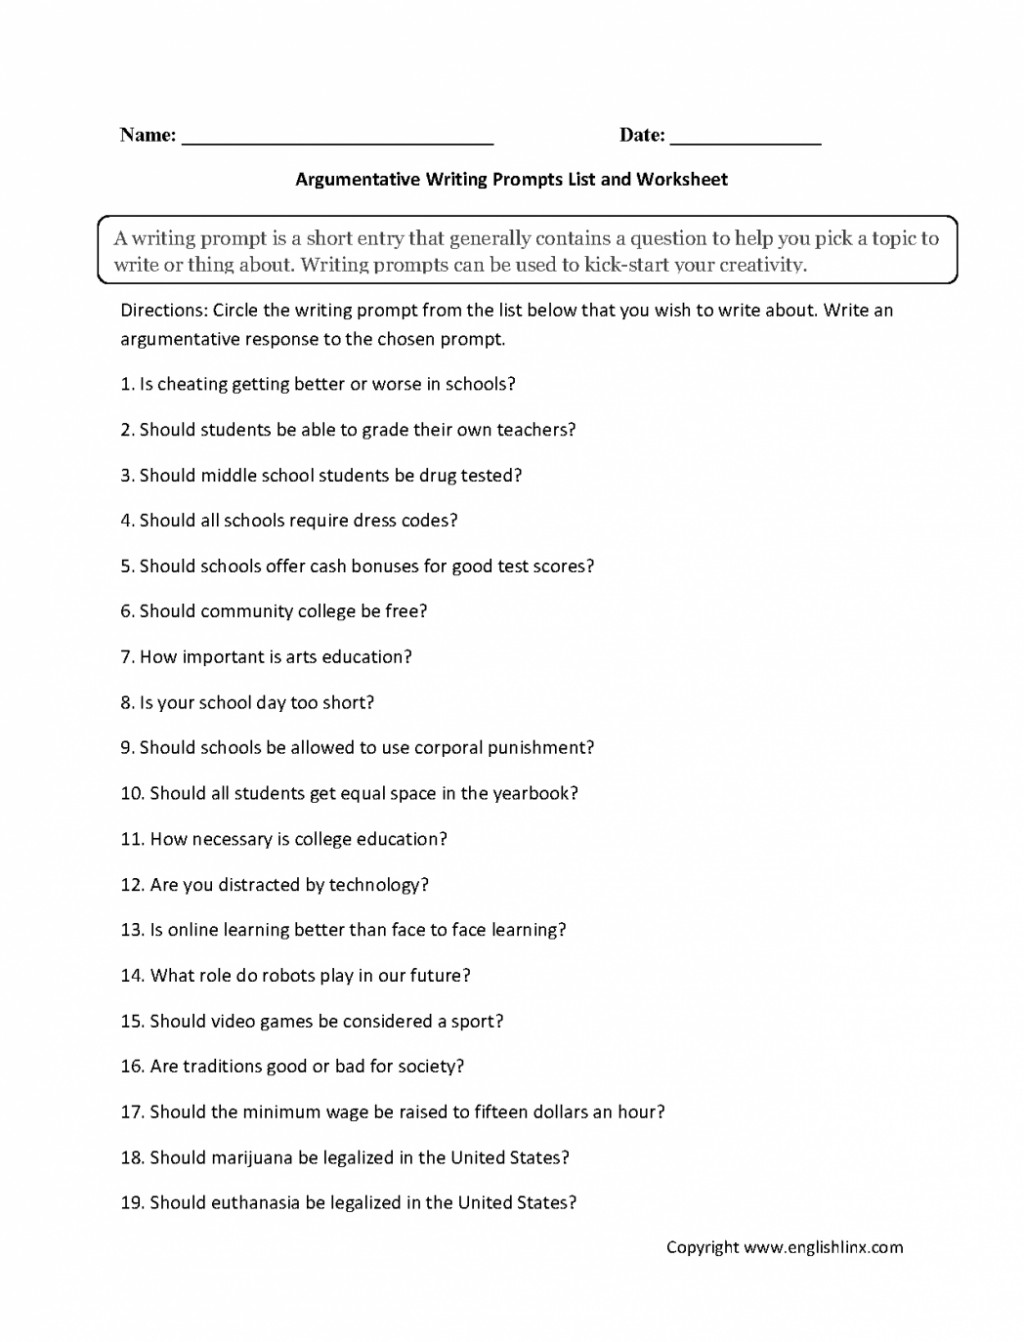 004 Extraordinary Sixth Grade Argument Writing Prompts With 7th Persuasive Essay Topics For 6th Graders Ok Students Speech Argumentative 1048x1374 Surprising Reflective Narrative Science Large